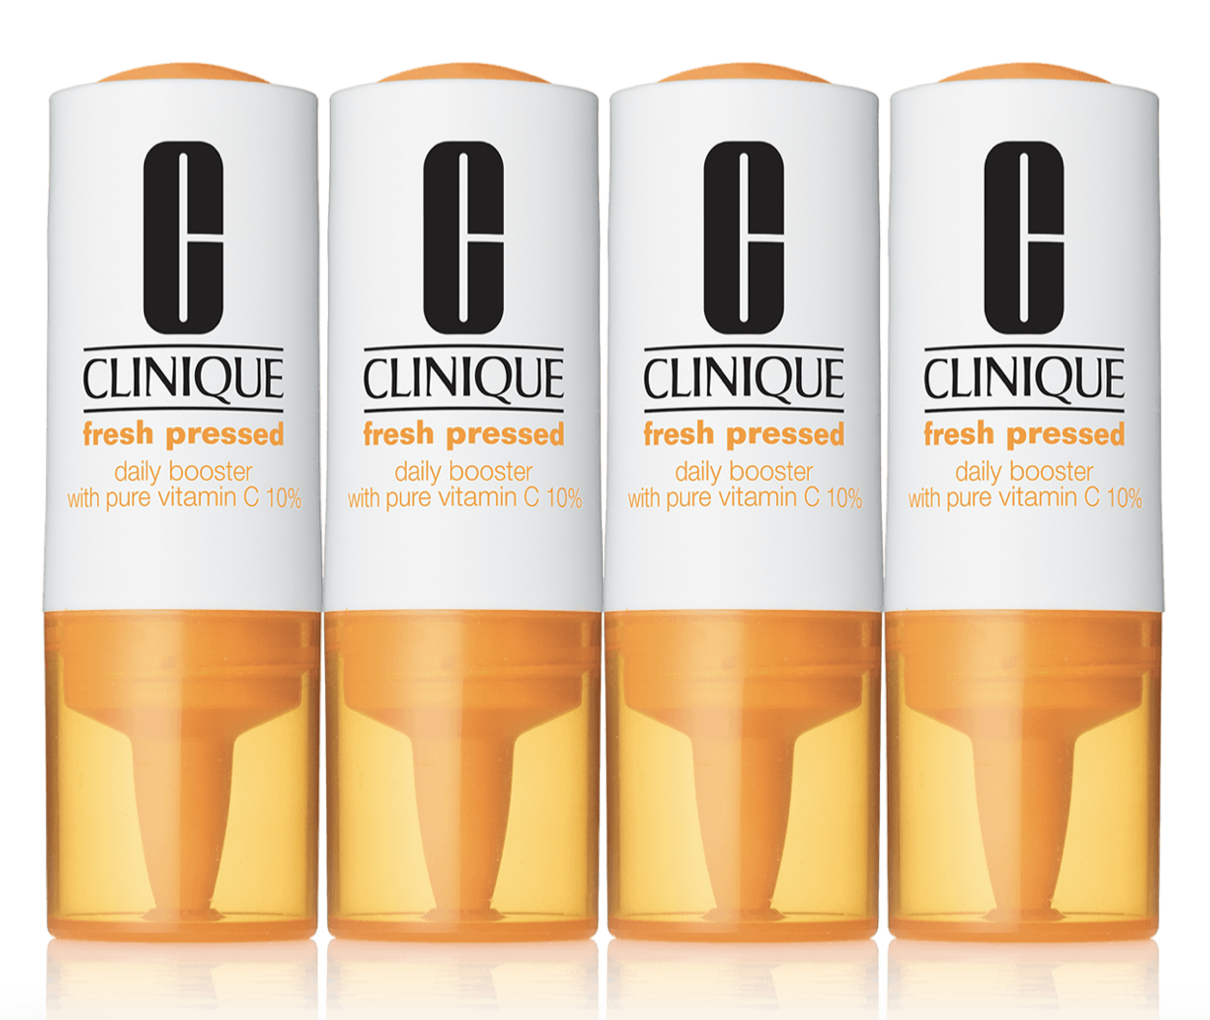 Clinique: Buy 1, Get 1 Free on fresh pressed daily booster